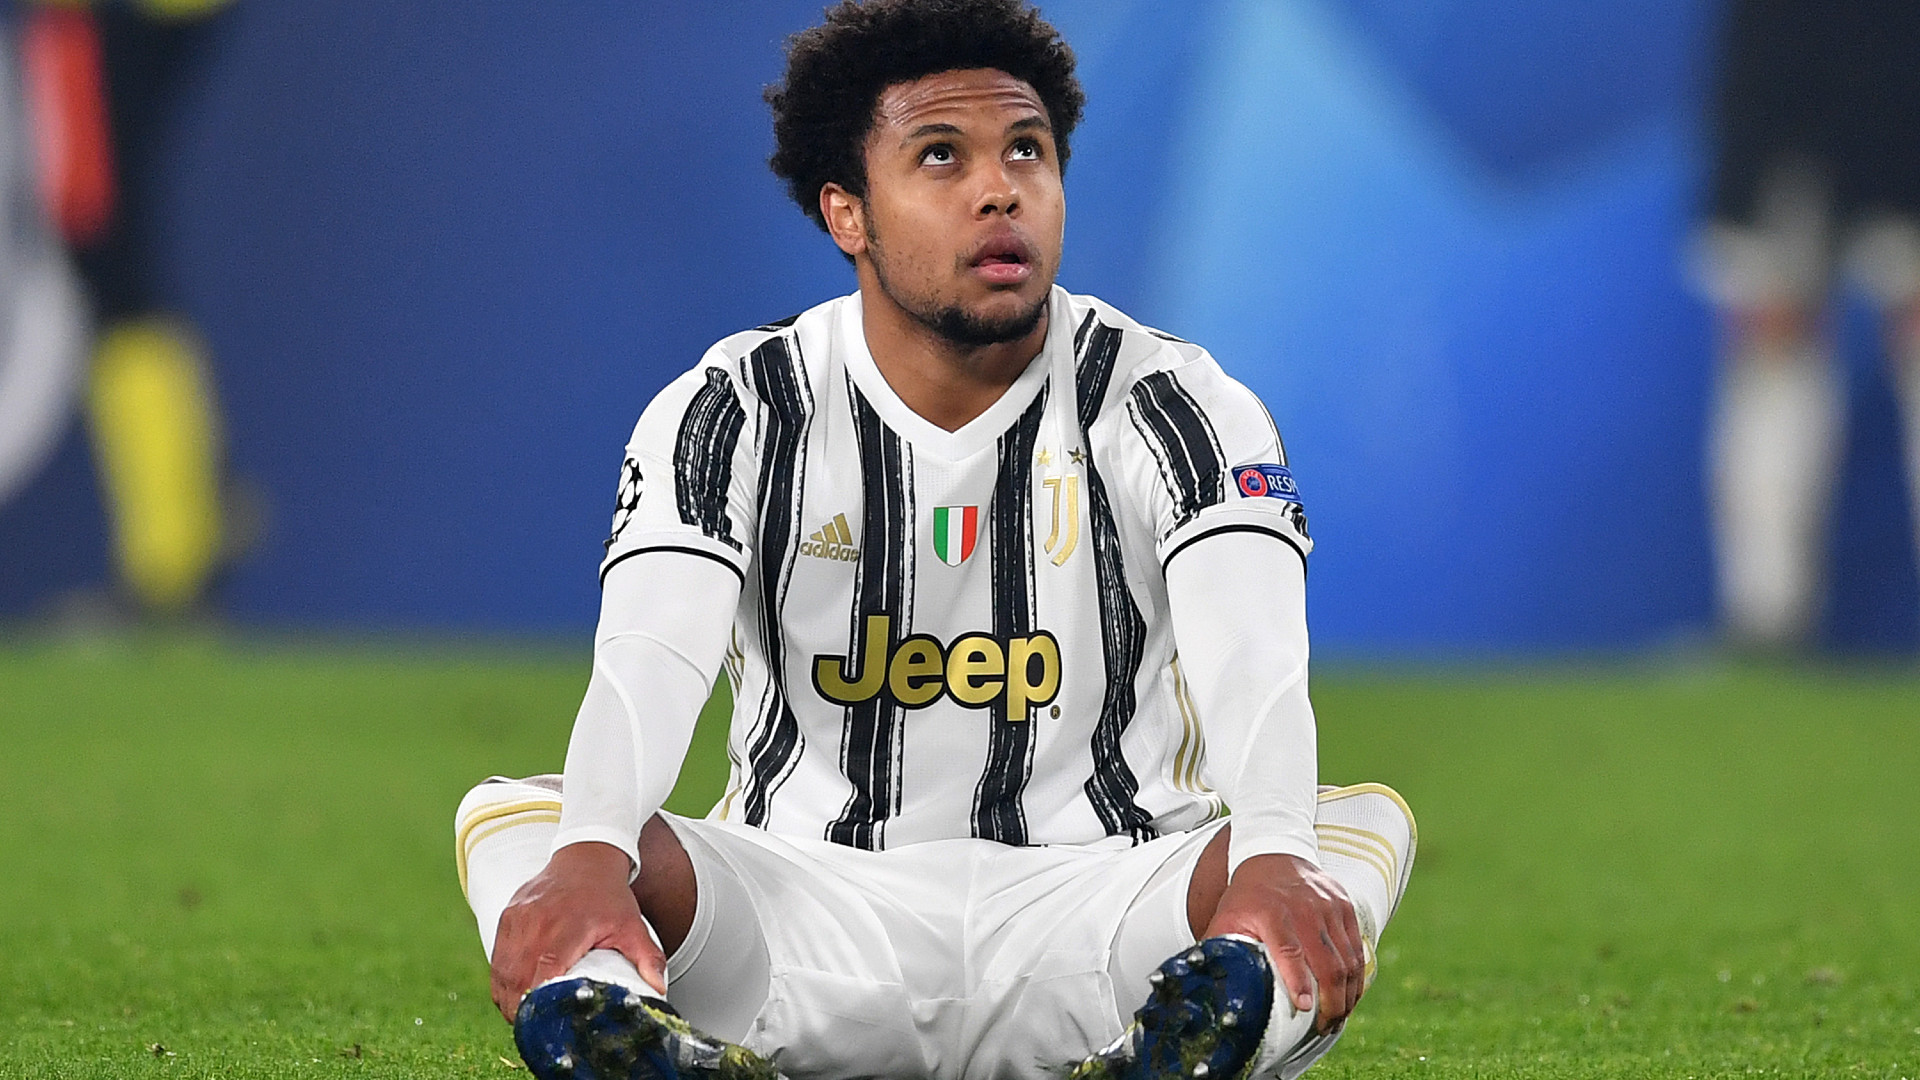 Juventus have suspended players Dybala, McKennie and Arthur for colliding with the derby after dropping the Covid-19 blockade